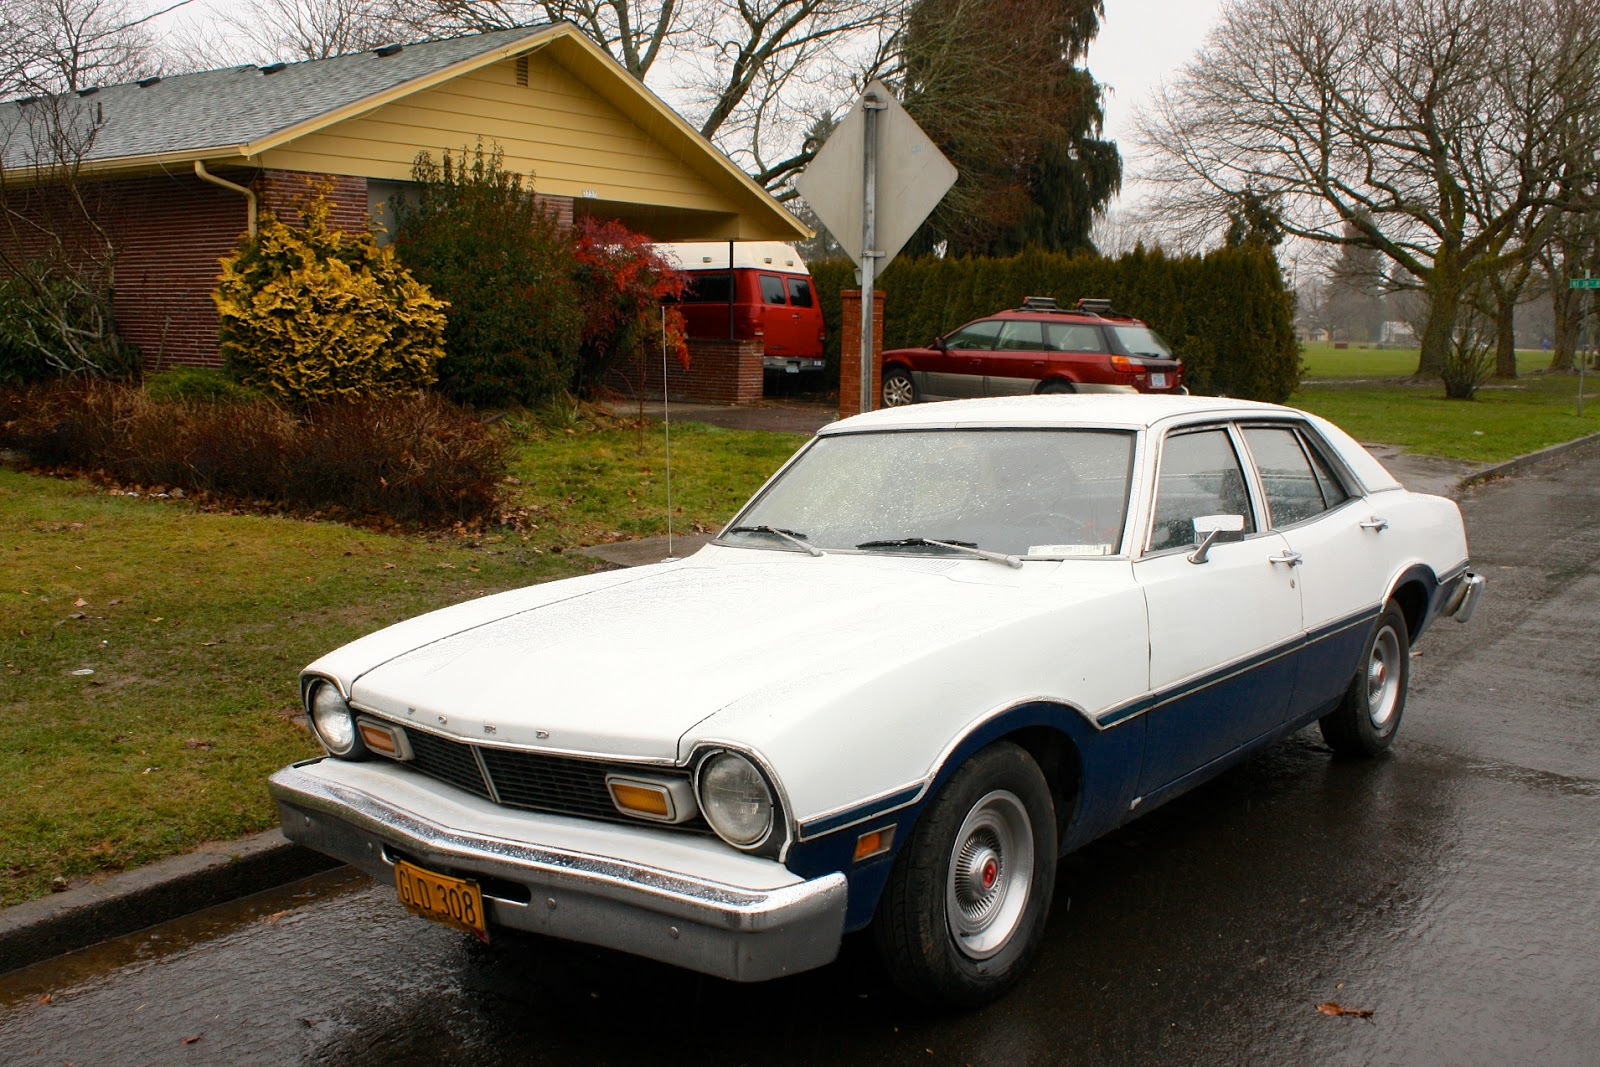 1976 Ford Maverick Sedan.